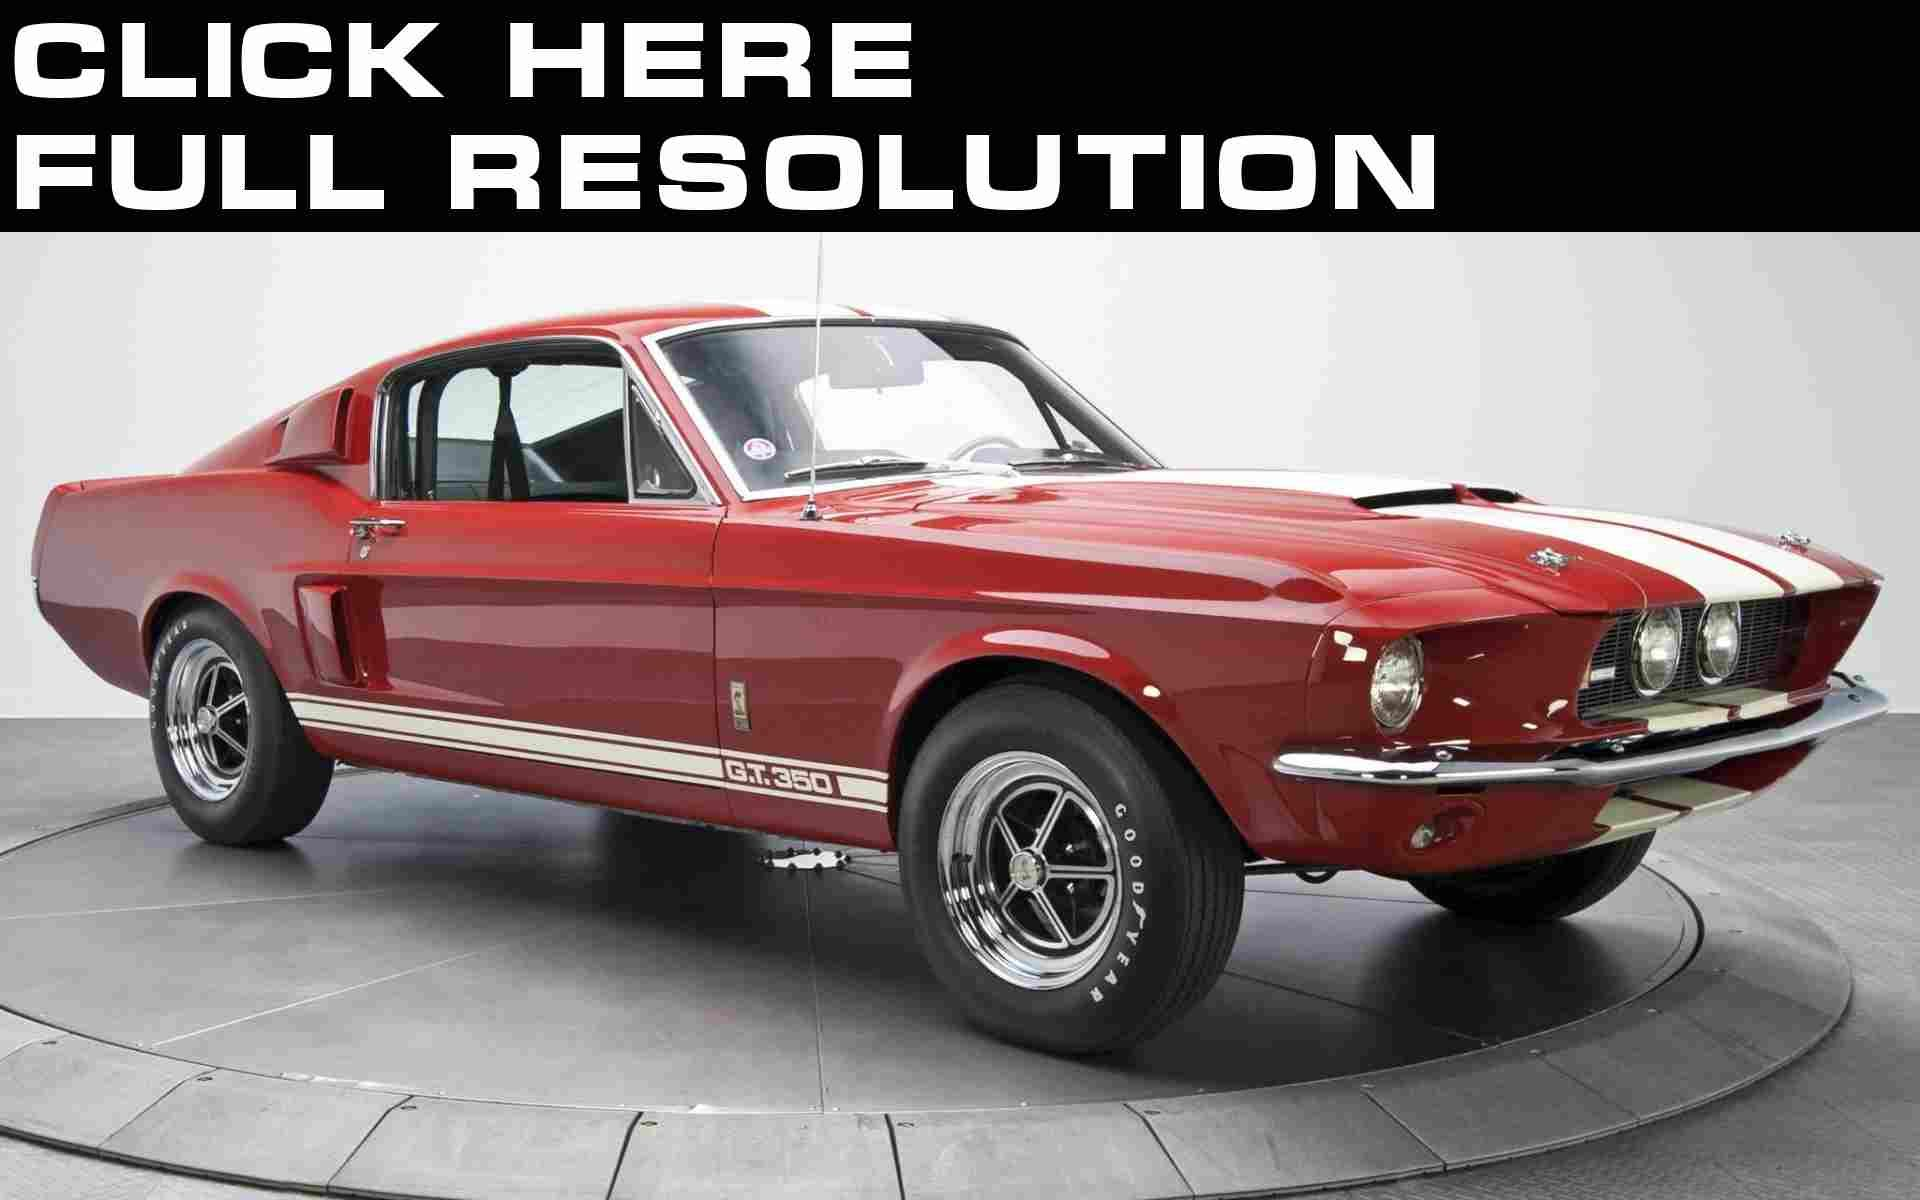 Ford Retro Mustang Shelby Gt350 1967 Red Metallic Ca Mustang